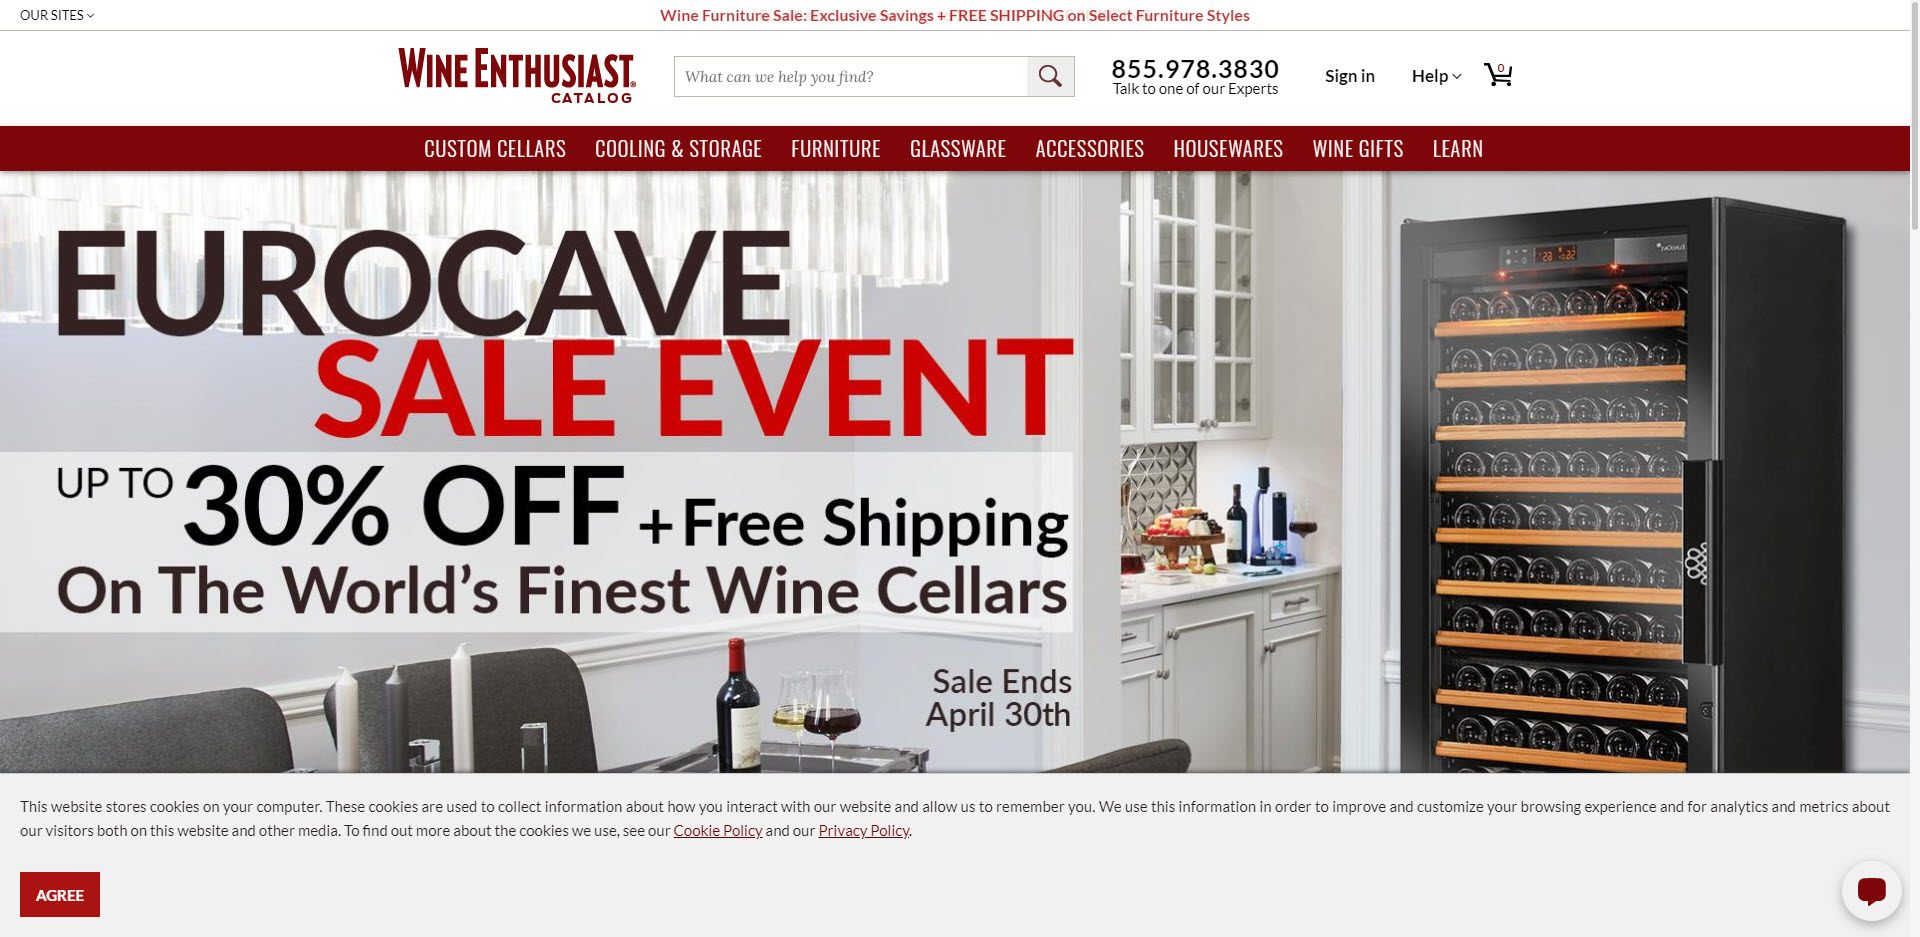 Wine Affiliate Programs - Wine Enthusiast